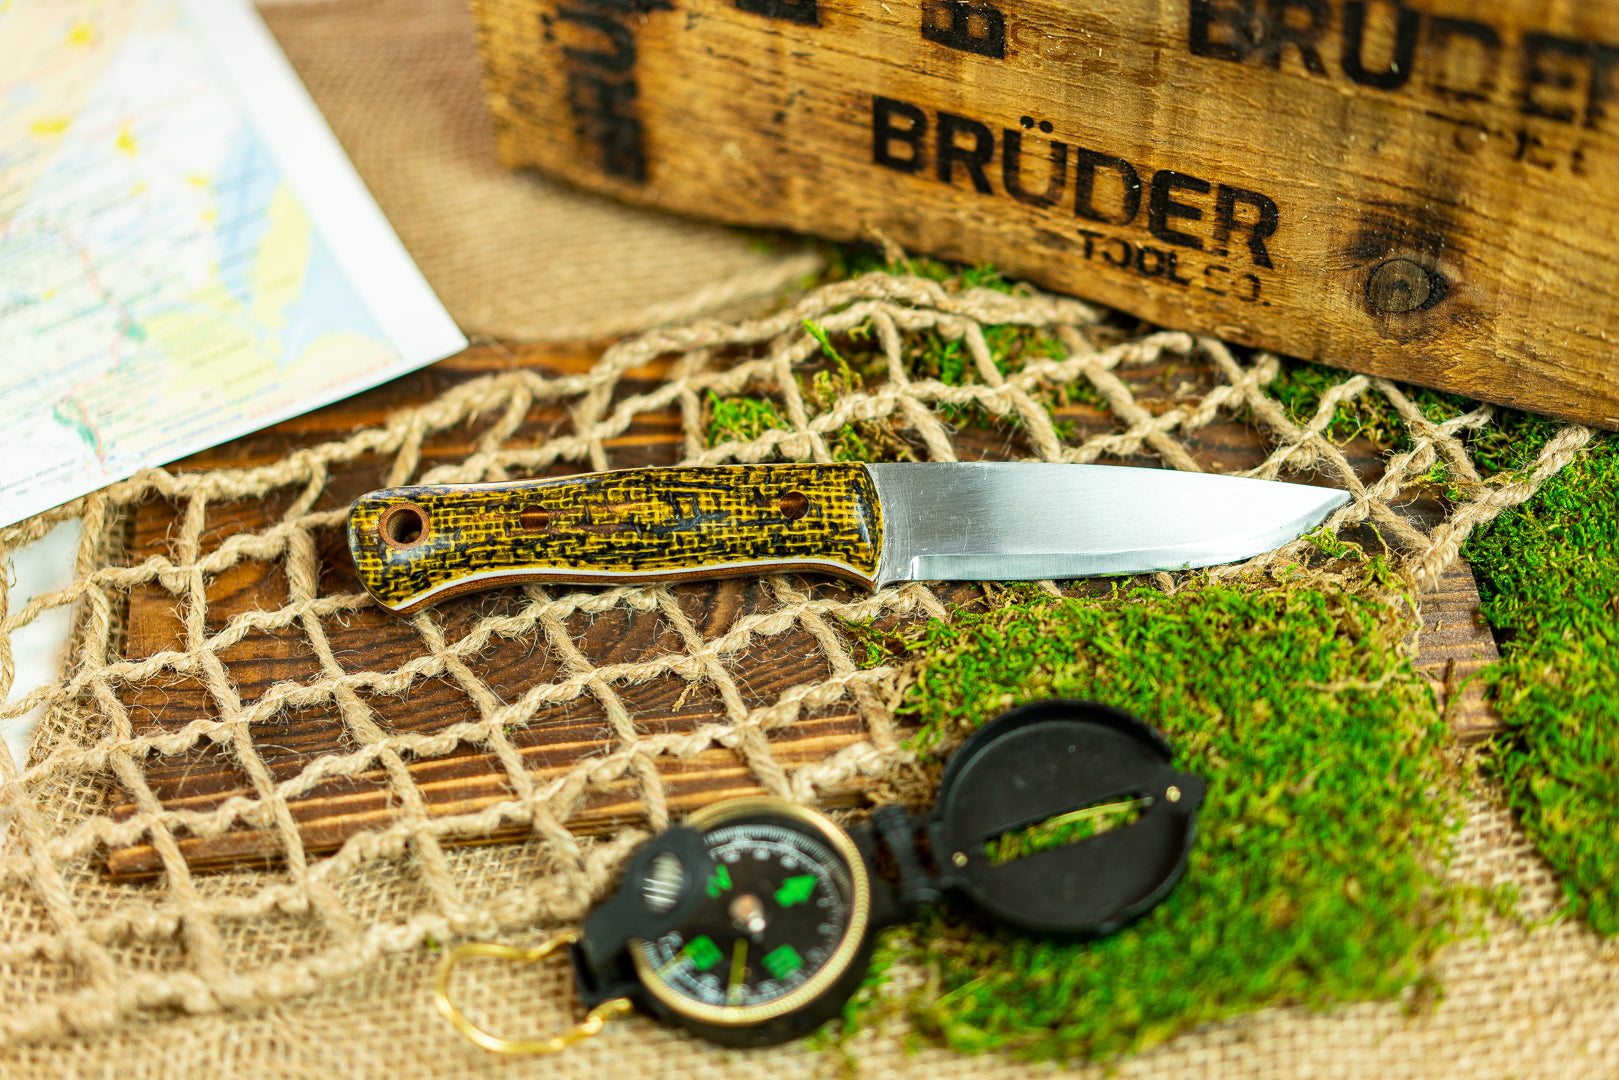 Brüder Alger Bushcraft Knife - Blue/Yellow Burlatex